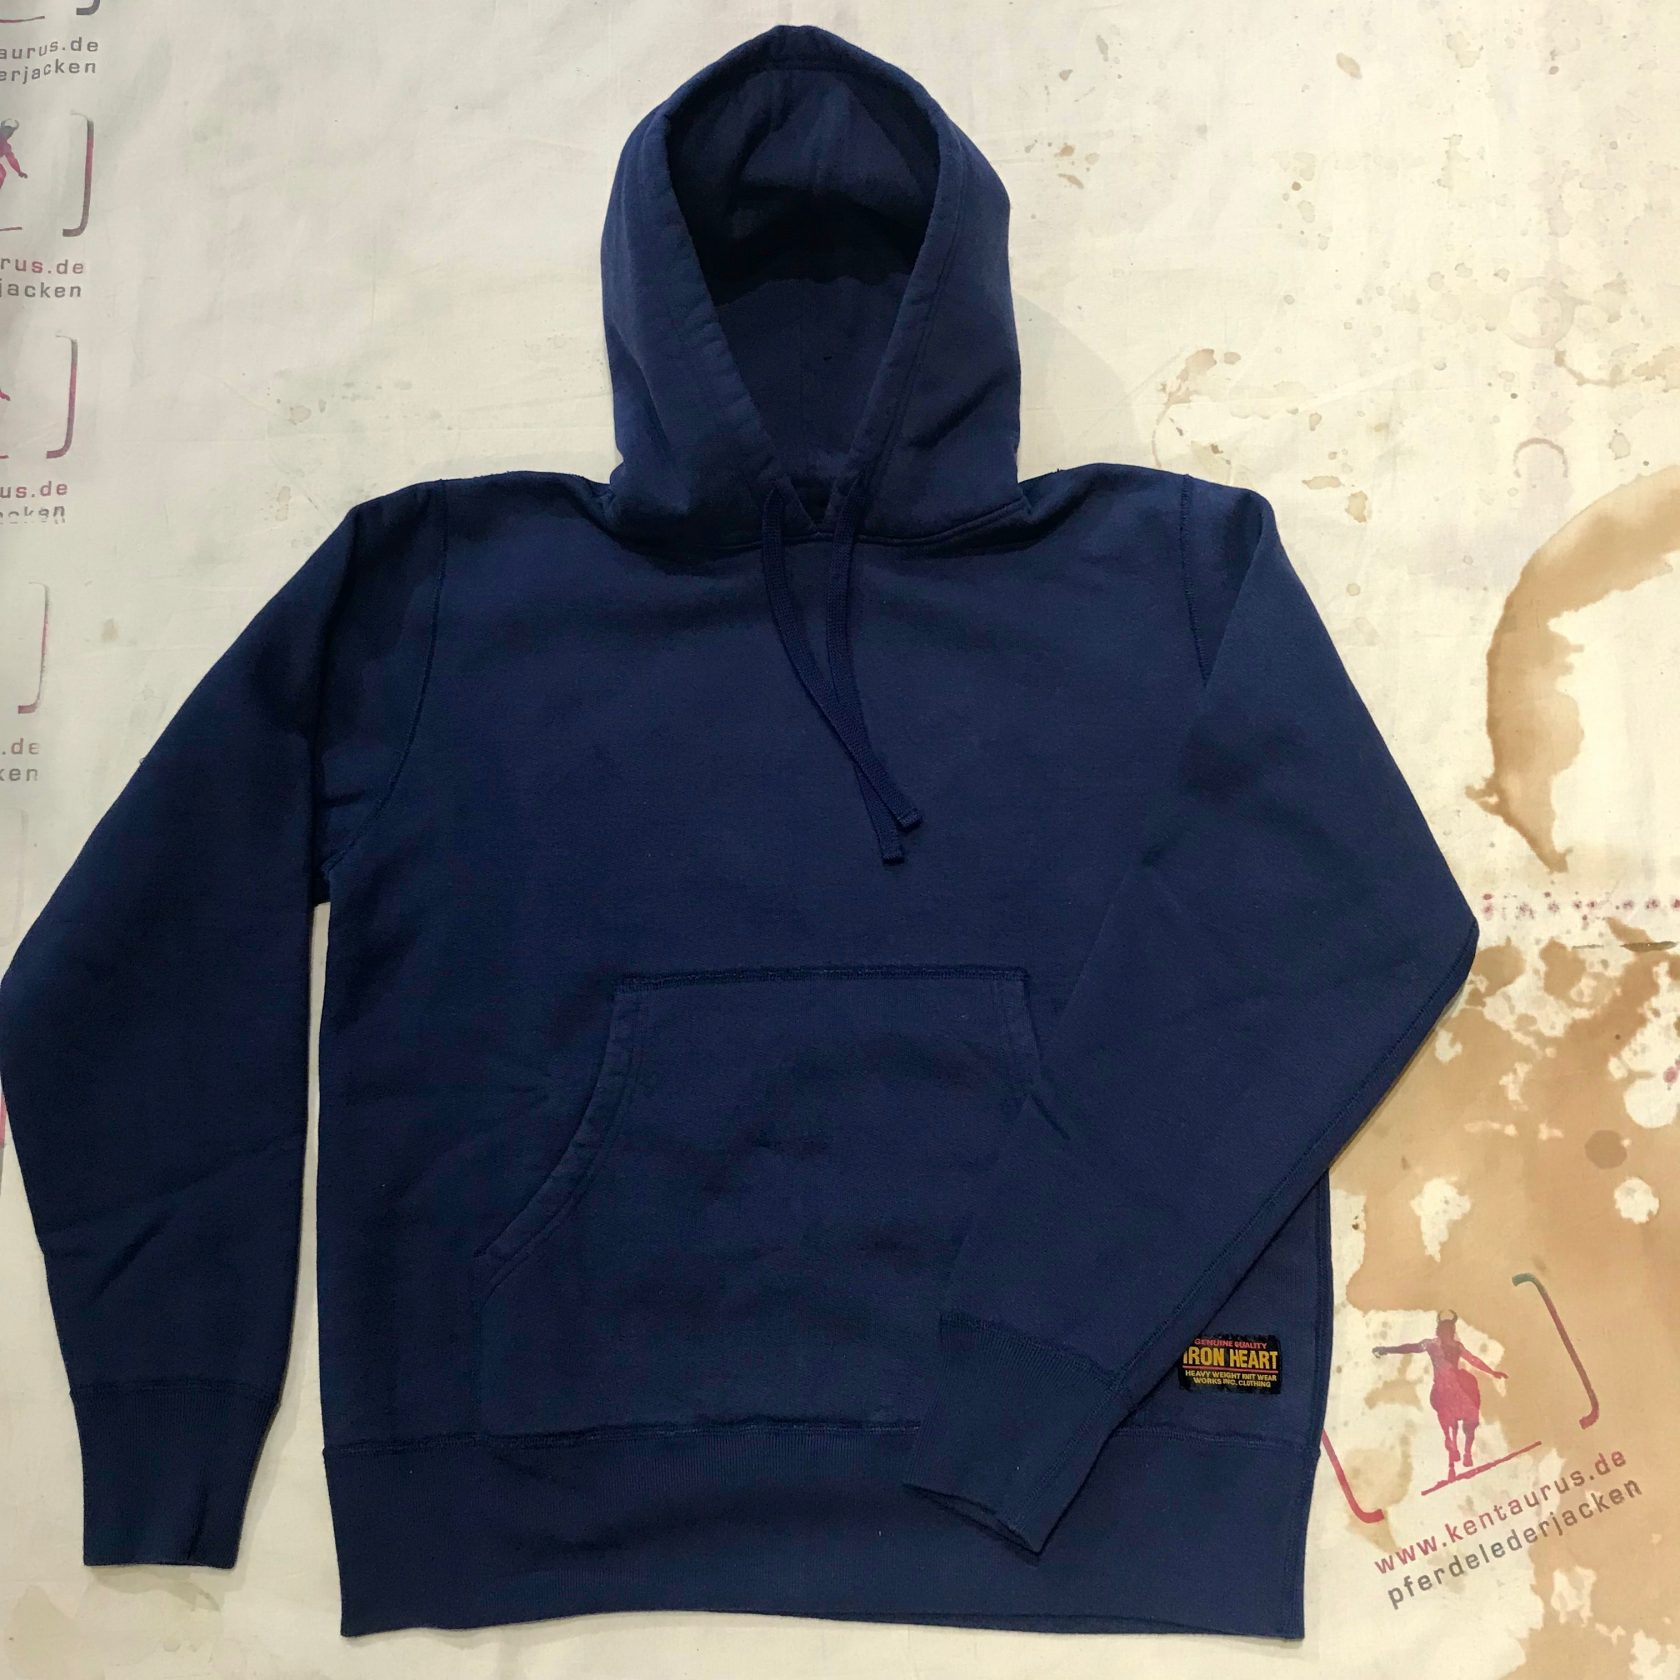 IHSW-23 hooded sweater navy